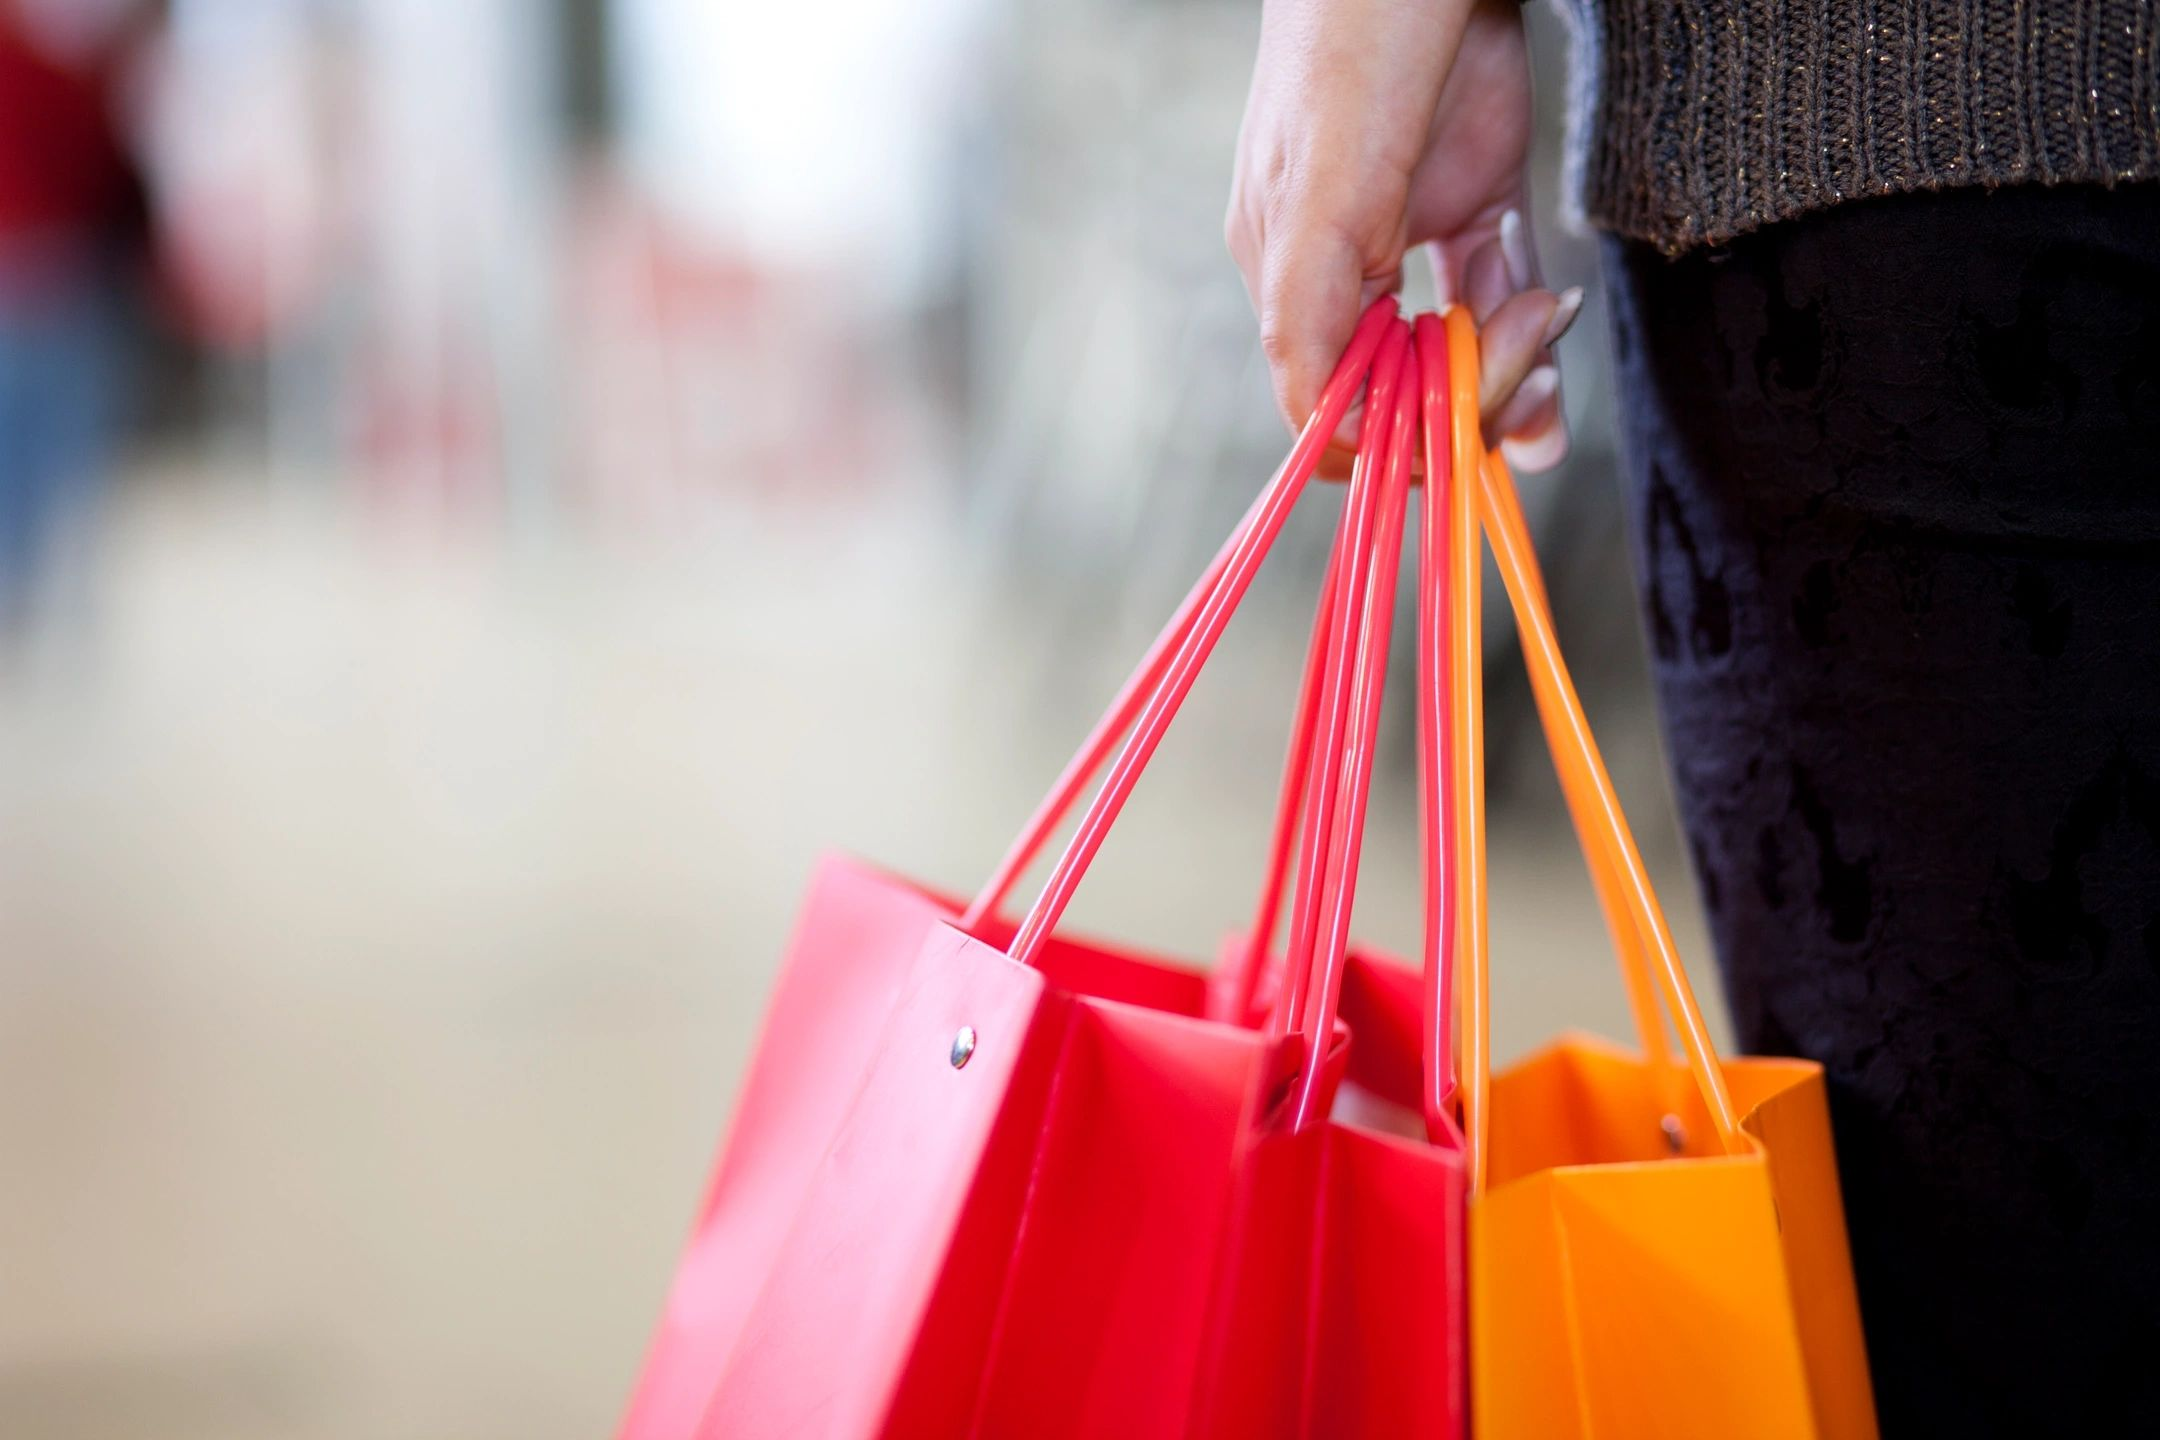 Shop With Experts: Save Time And Pick The Right Purchase At Local Stores